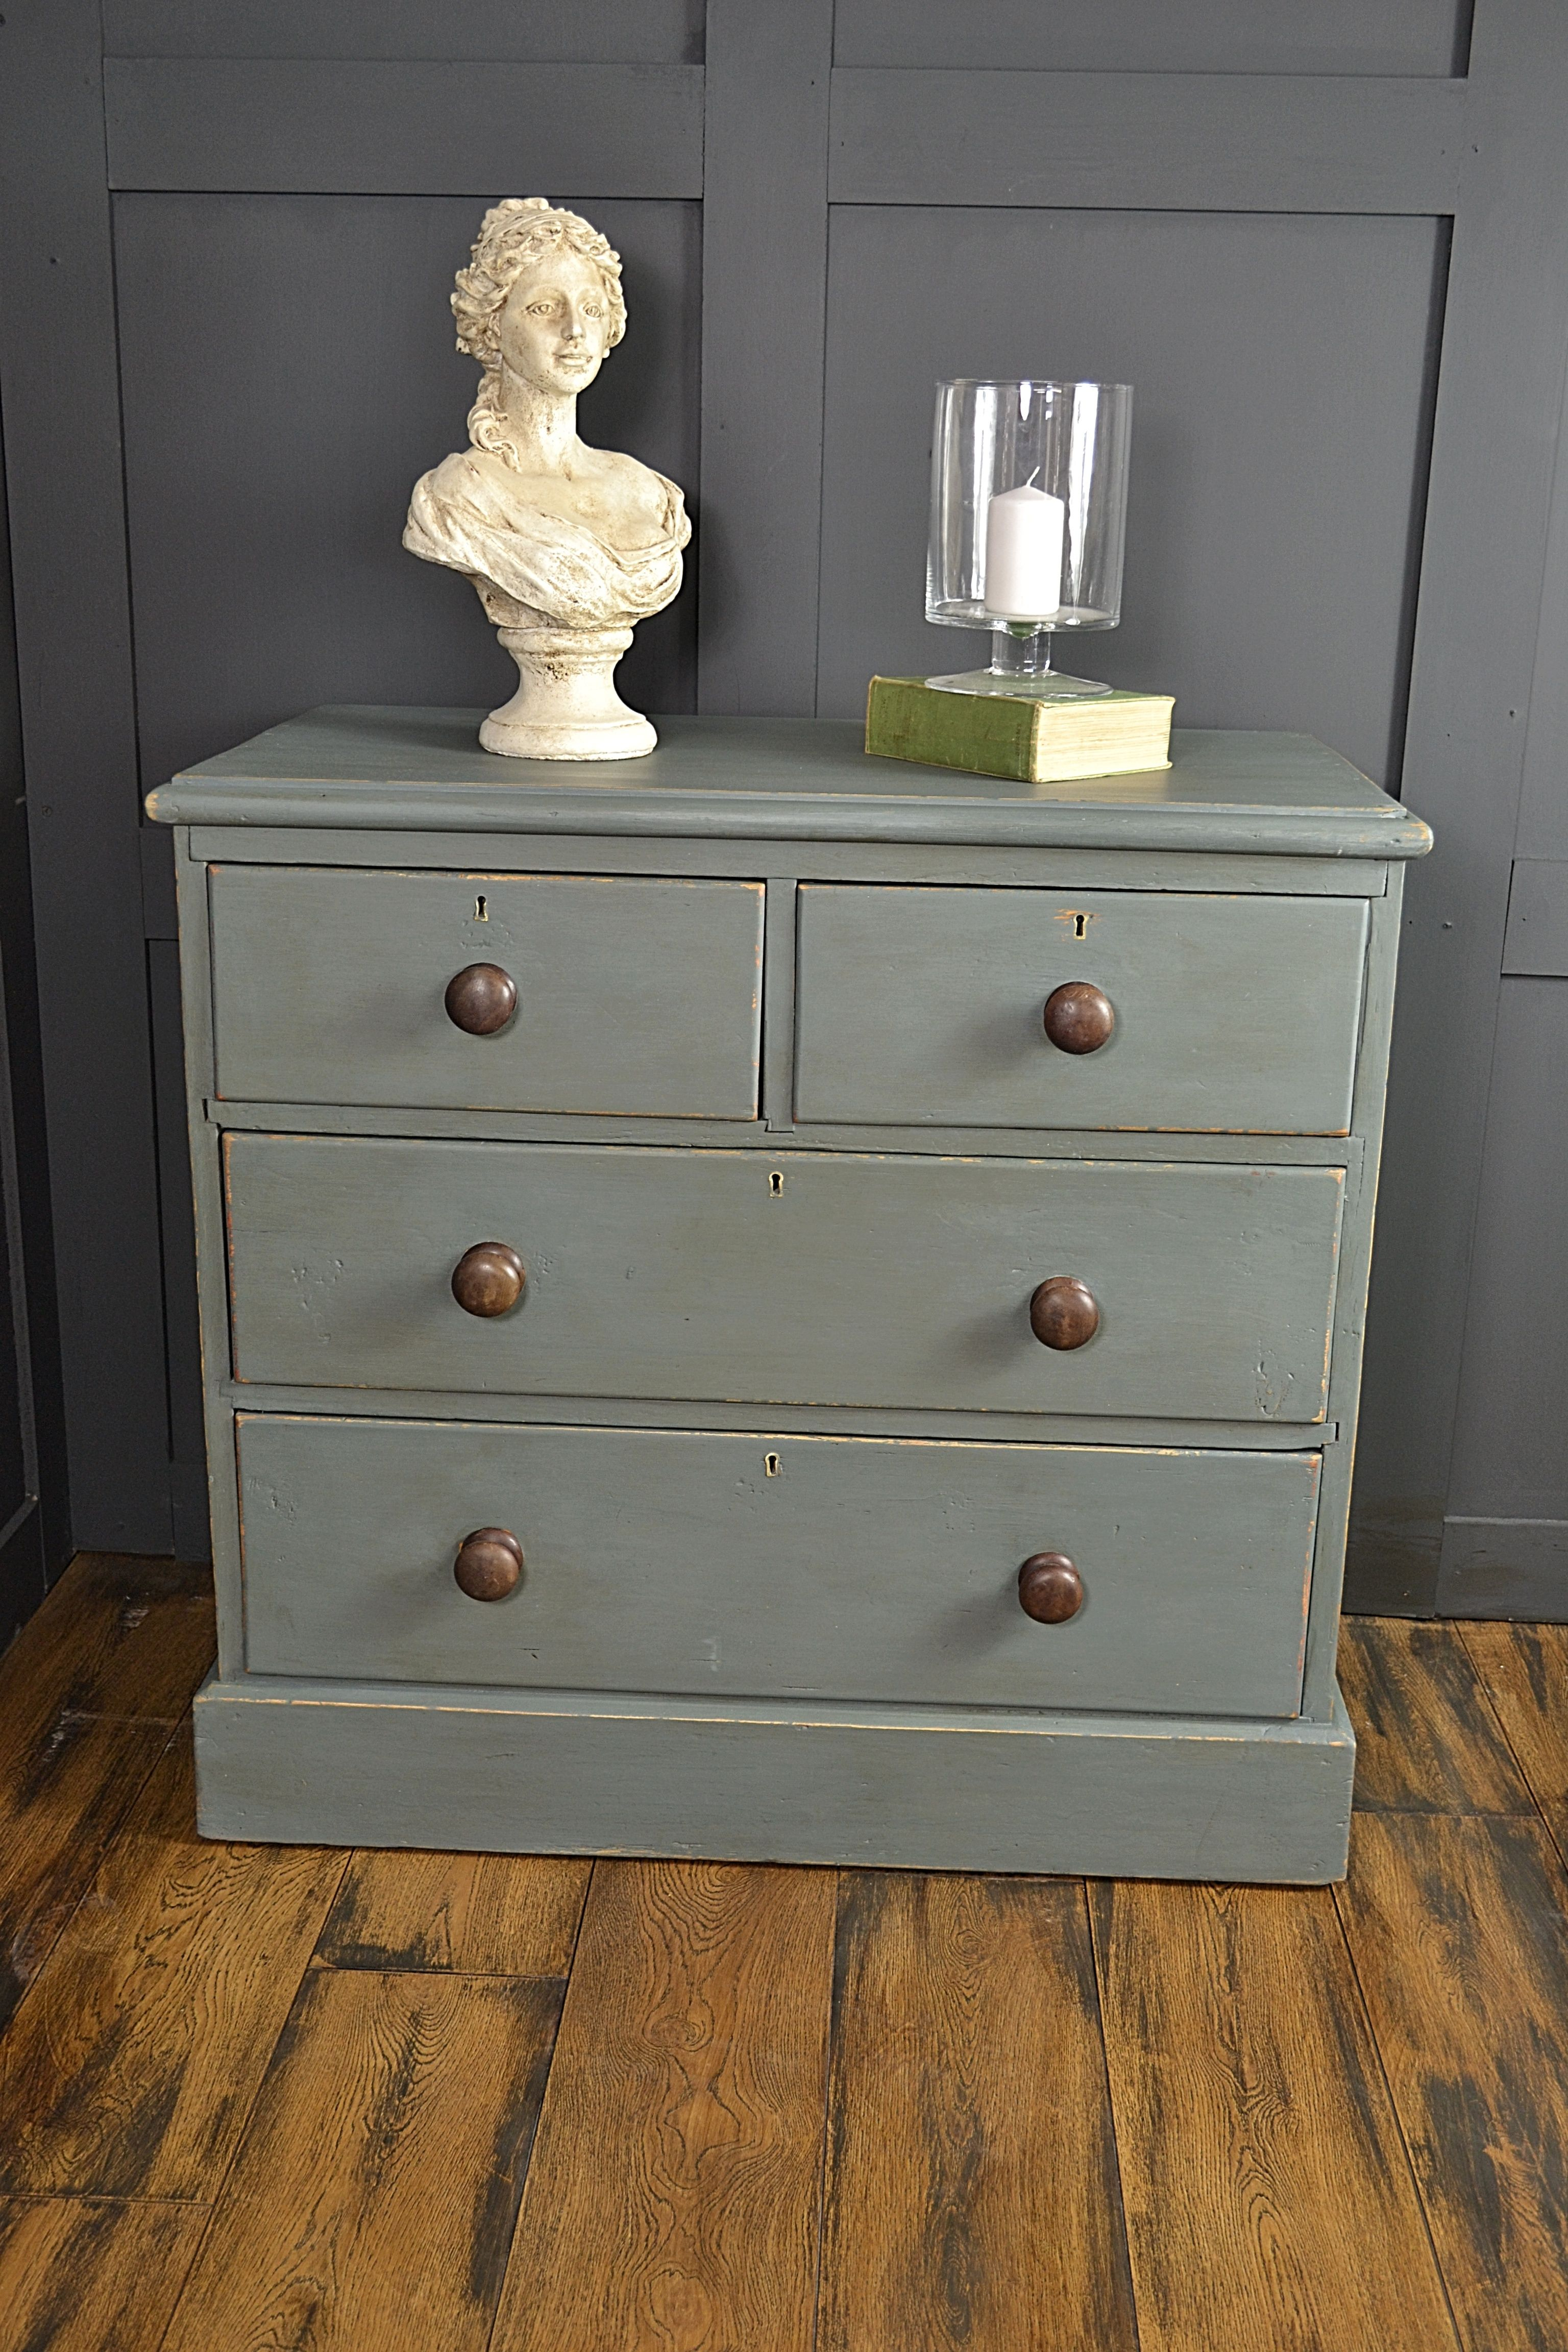 This Antique Pine Chest Of Drawers Has Been Painted In A Mix Of Annie Sloan Abbusson Blu Shabby Chic Chest Of Drawers Shabby Chic Dresser Shabby Chic Furniture